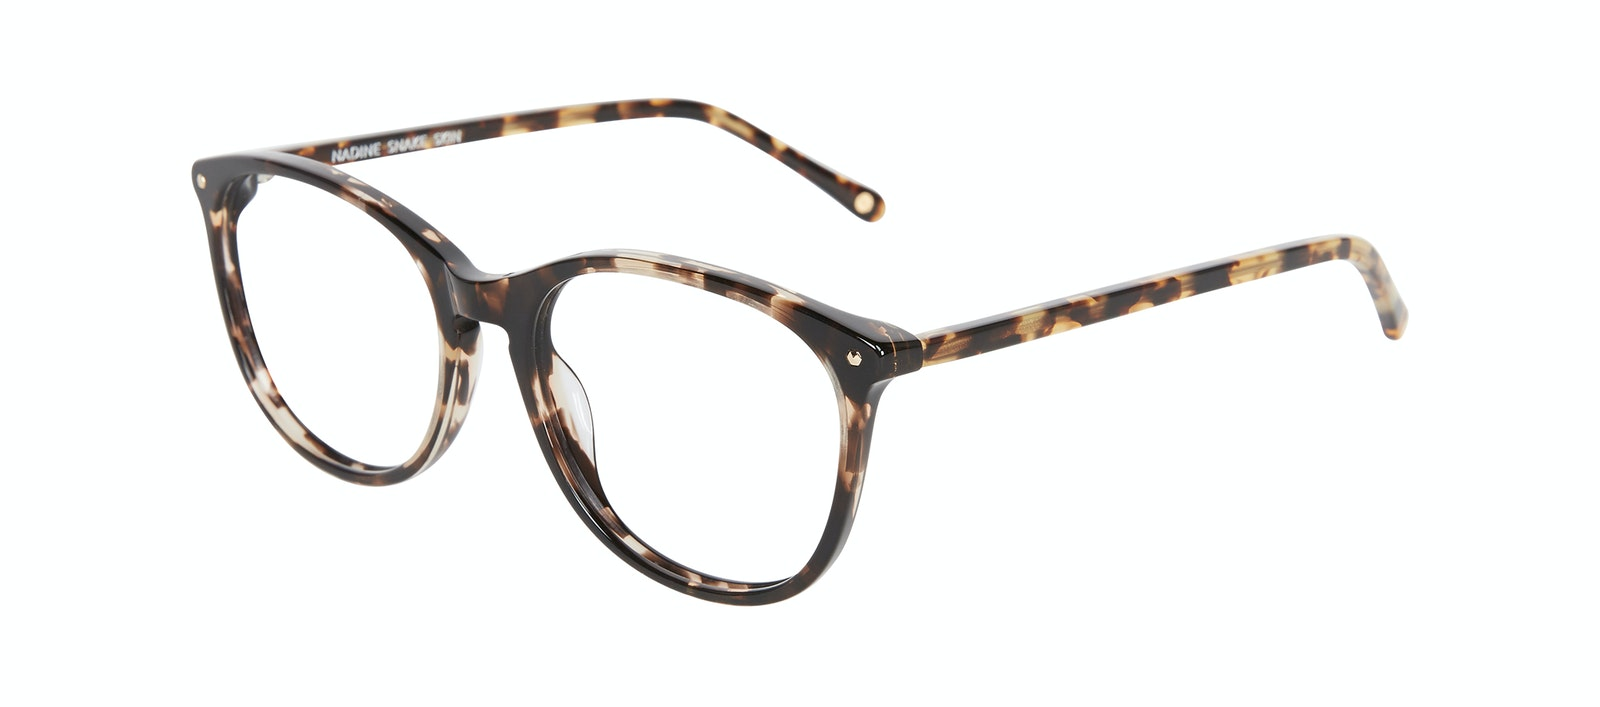 Affordable Fashion Glasses Rectangle Square Round Eyeglasses Women Nadine Snake Skin Tilt